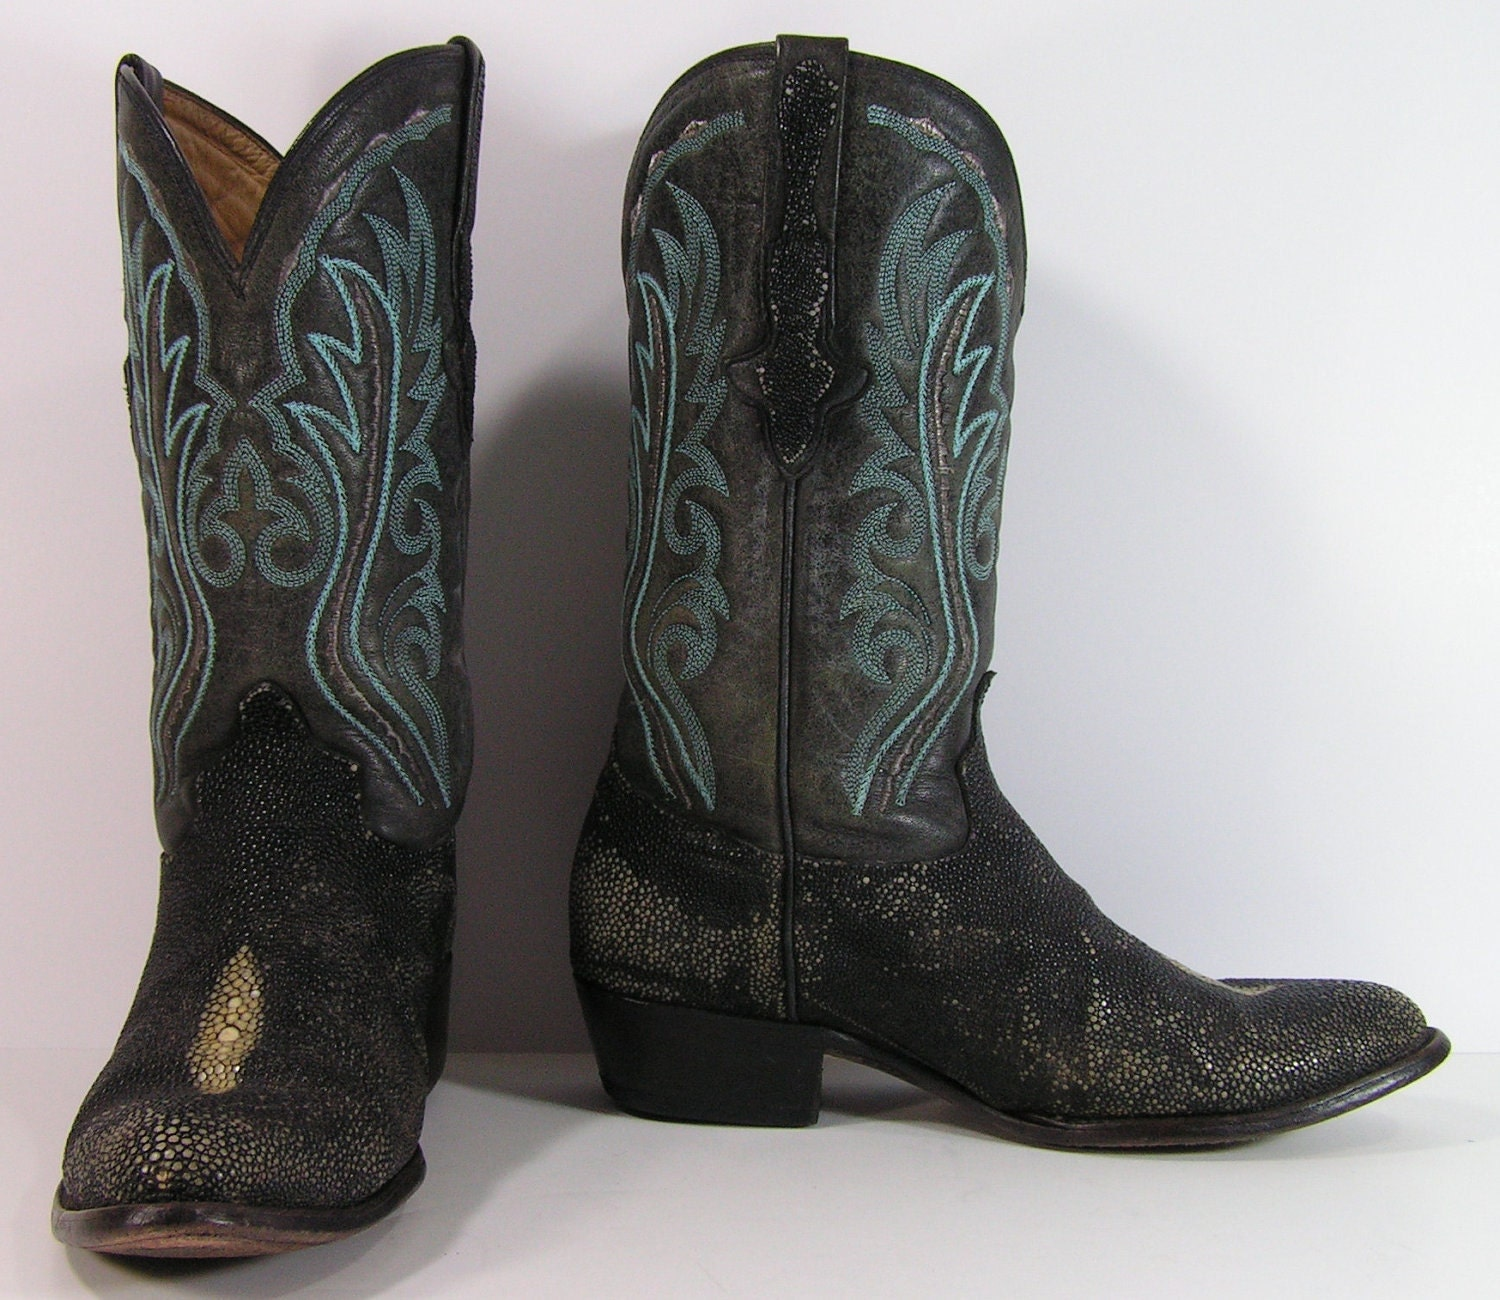 vintage stingray cowboy boots womens 10 b m by vintagecowboyboots